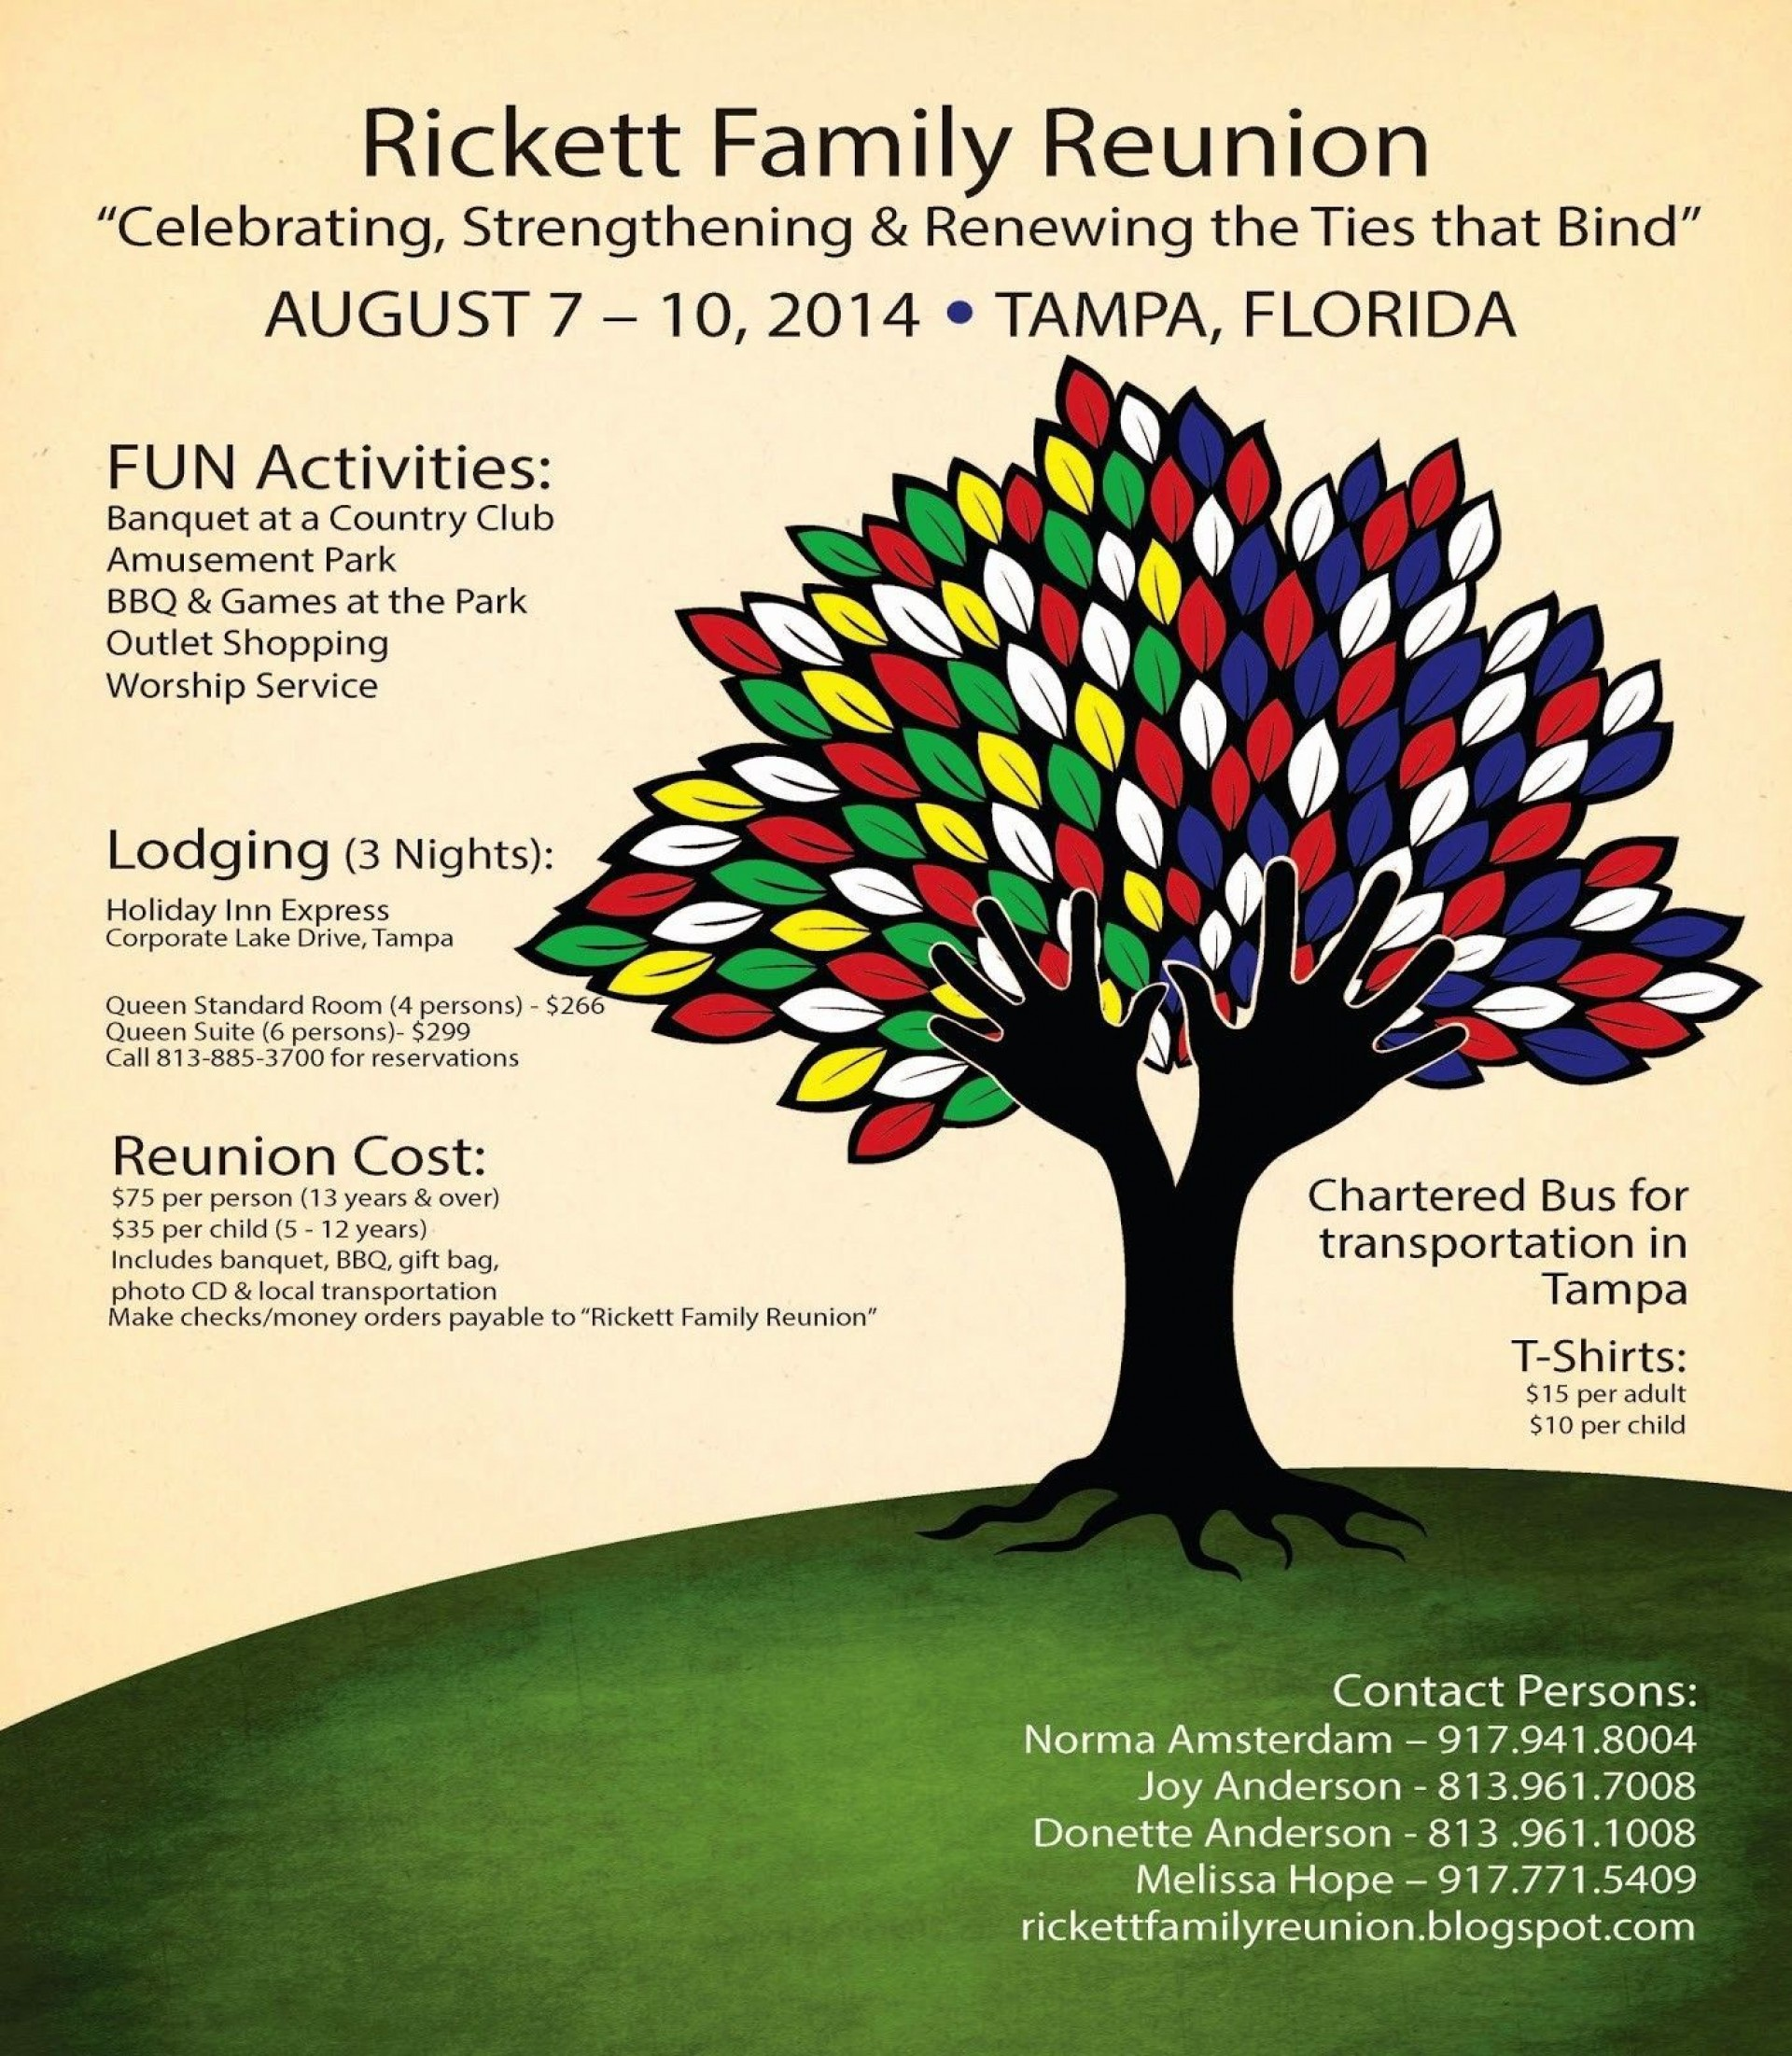 000 Stirring Family Reunion Flyer Template High Def  Templates Free For1920